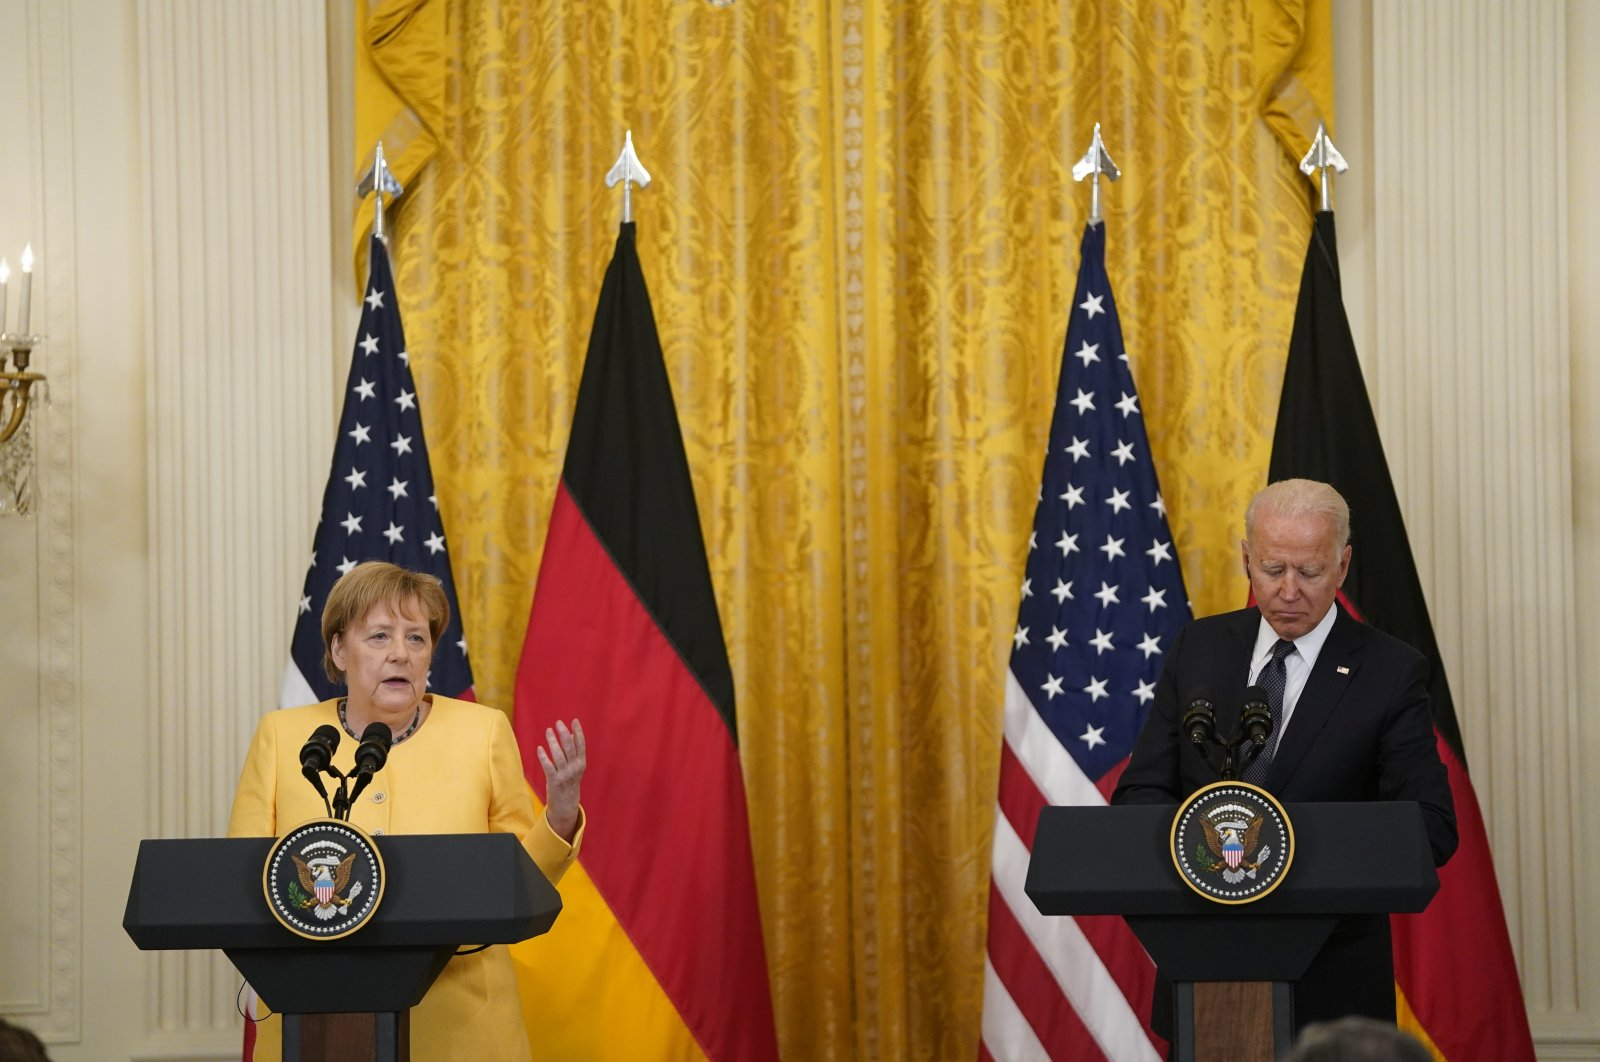 U.S. President Joe Biden (R) and German Chancellor Angela Merkel participate in a joint press conference in the East Room of the White House in Washington, D.C., U.S., July 15, 2021. (EPA Photo)